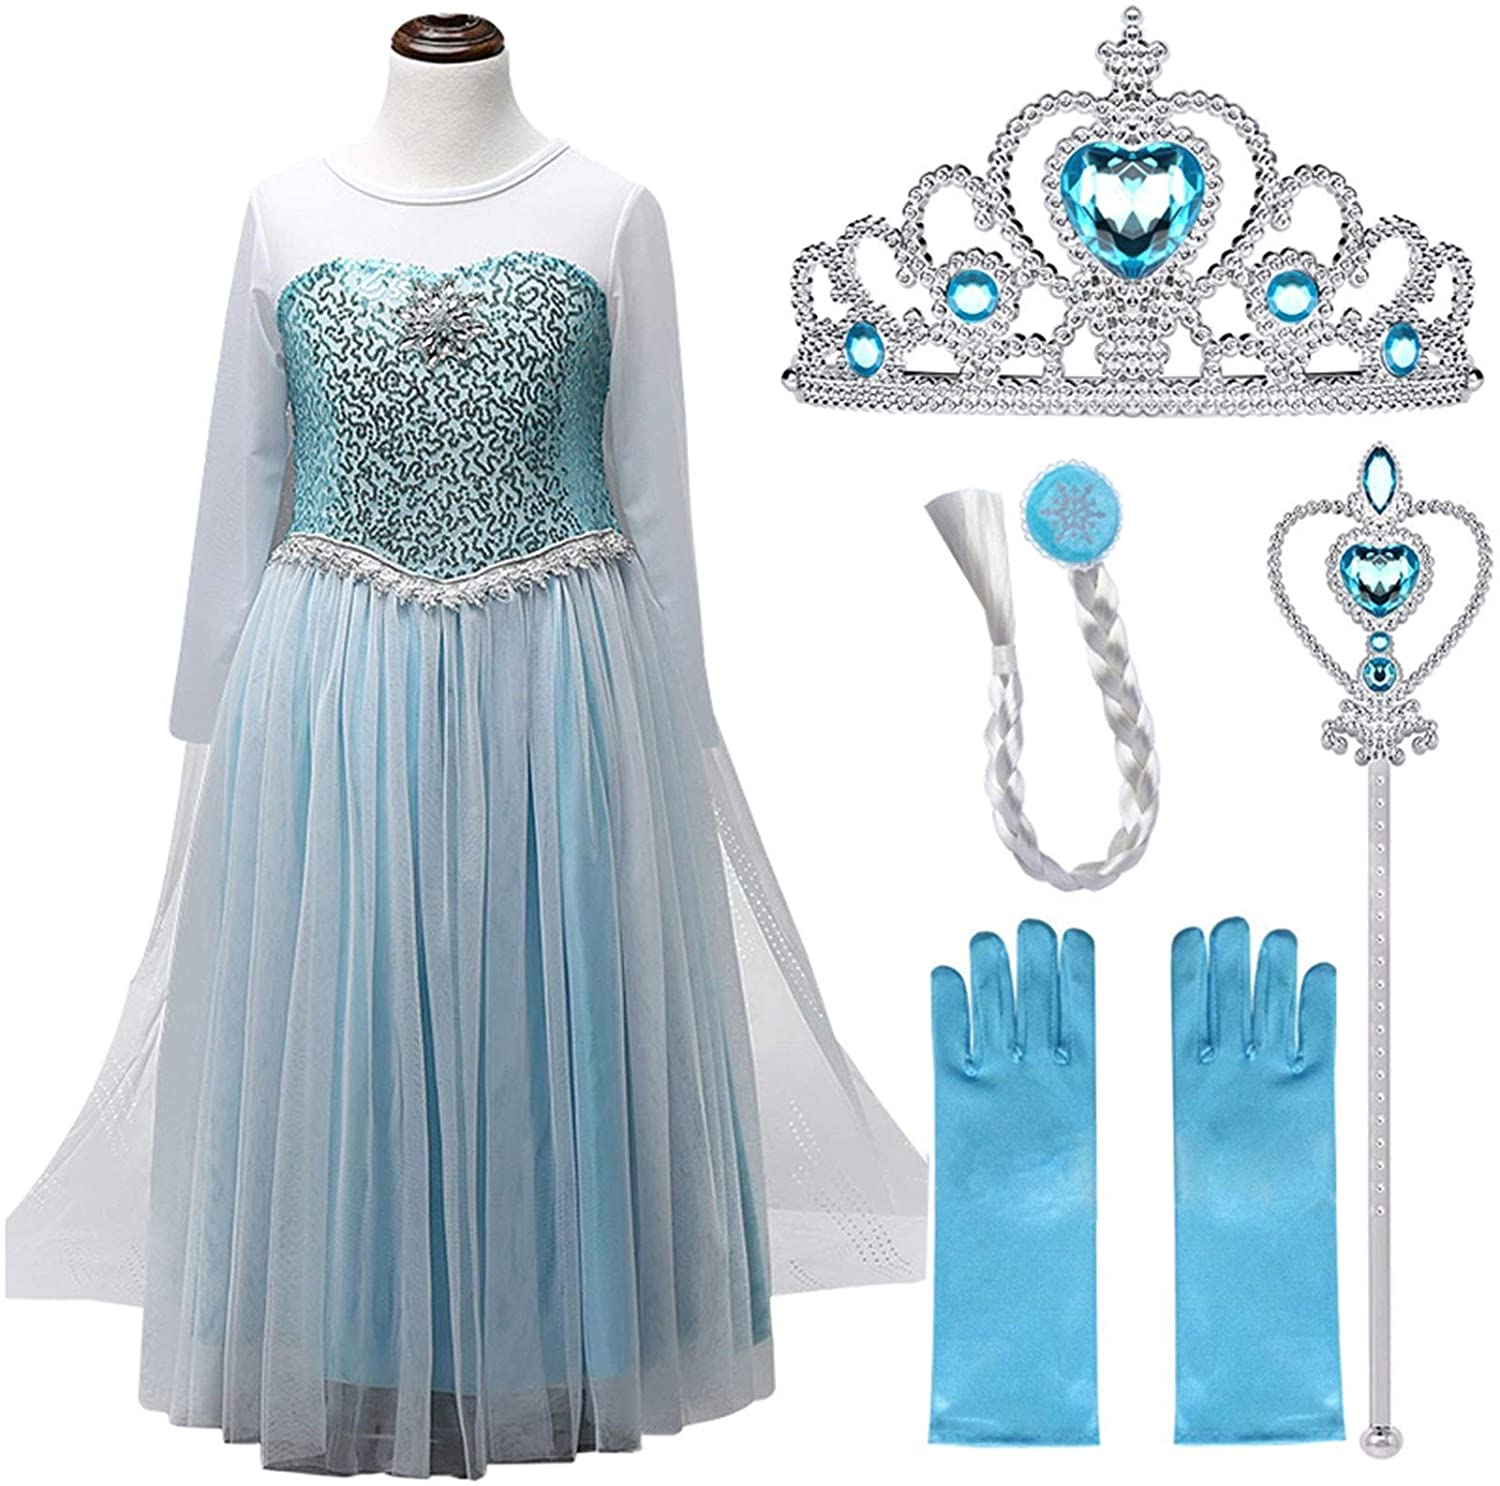 XYXINS Dresses for Girls Princess Party Elsa Costume Snow Queen 2 Cosplay Hair Accessory Set Halloween Girls Clothes Festive Dress Up Princess Look (Color : White Set 2, Kid Size : 7)